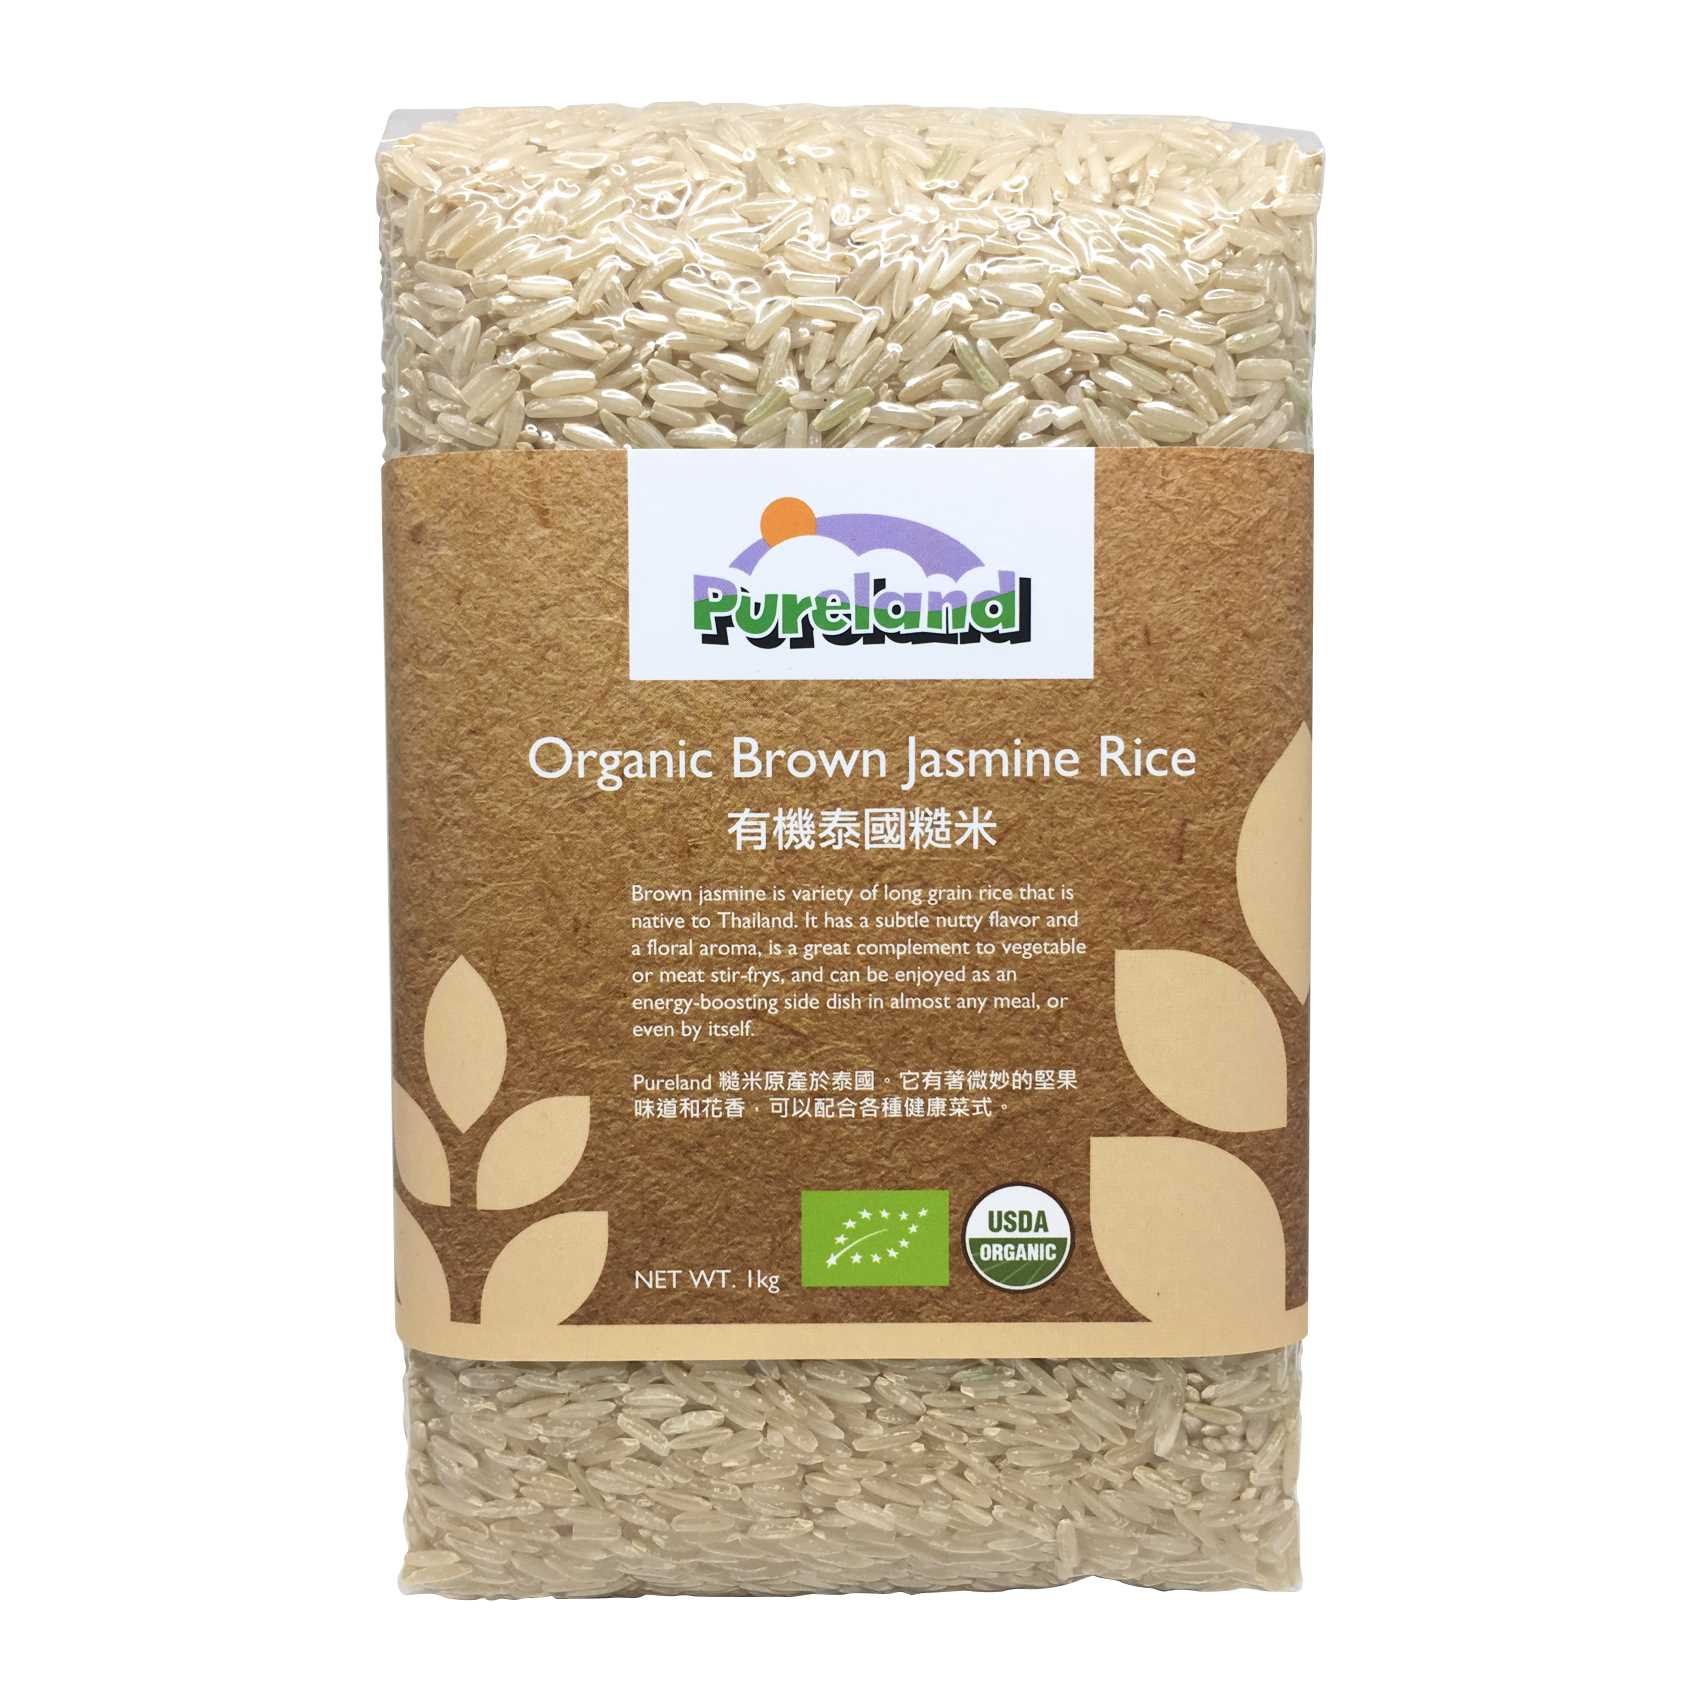 Pureland Organic Jasmine Brown Rice 1kg